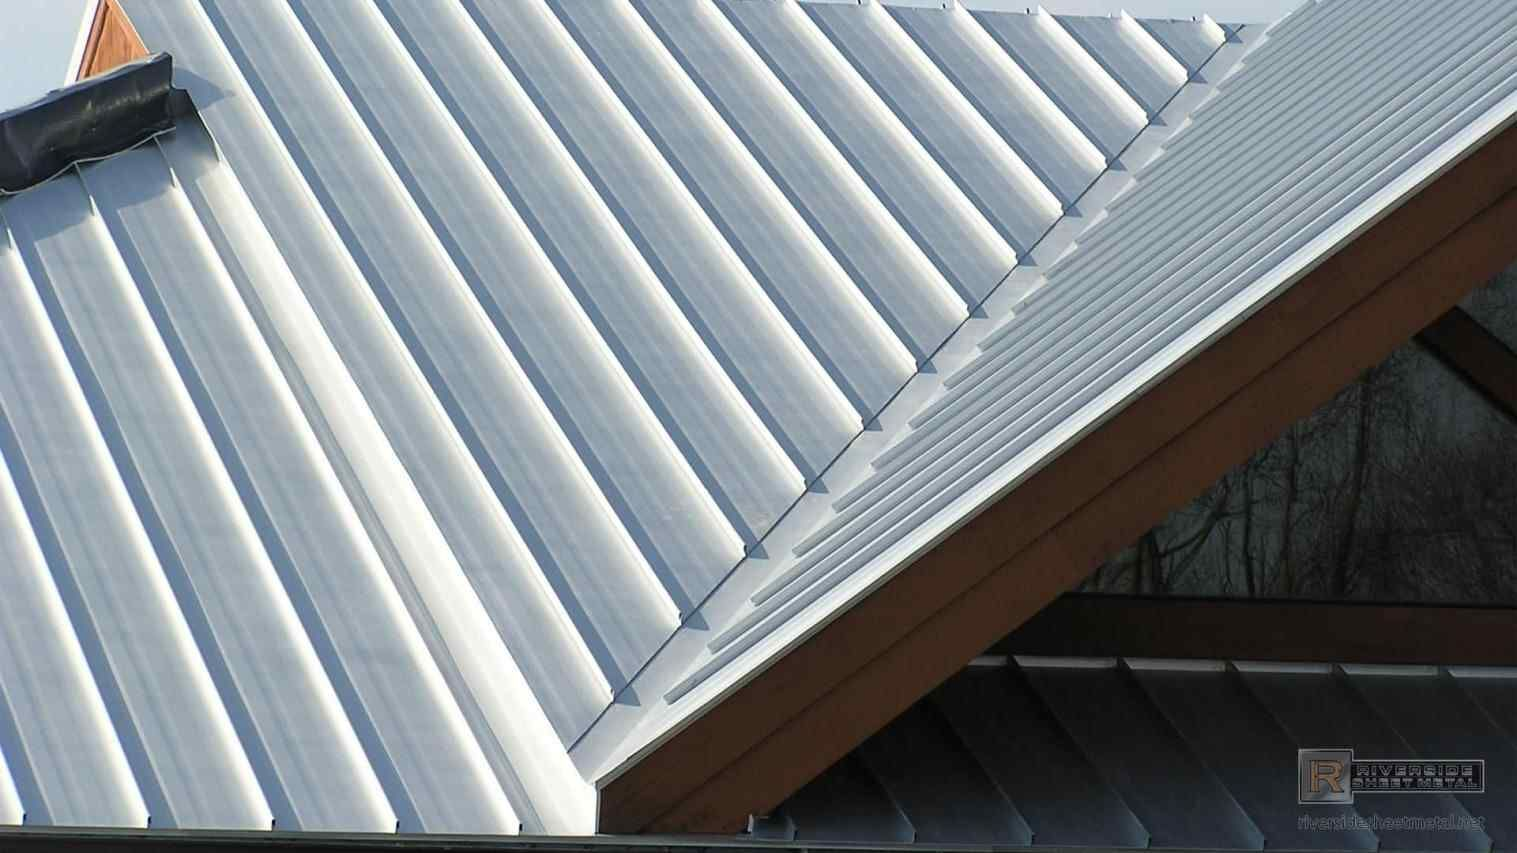 Green Metal Roofing Sheets Metal Roof Panels Fiberglass Roof Panels Aluminum Roof Panels